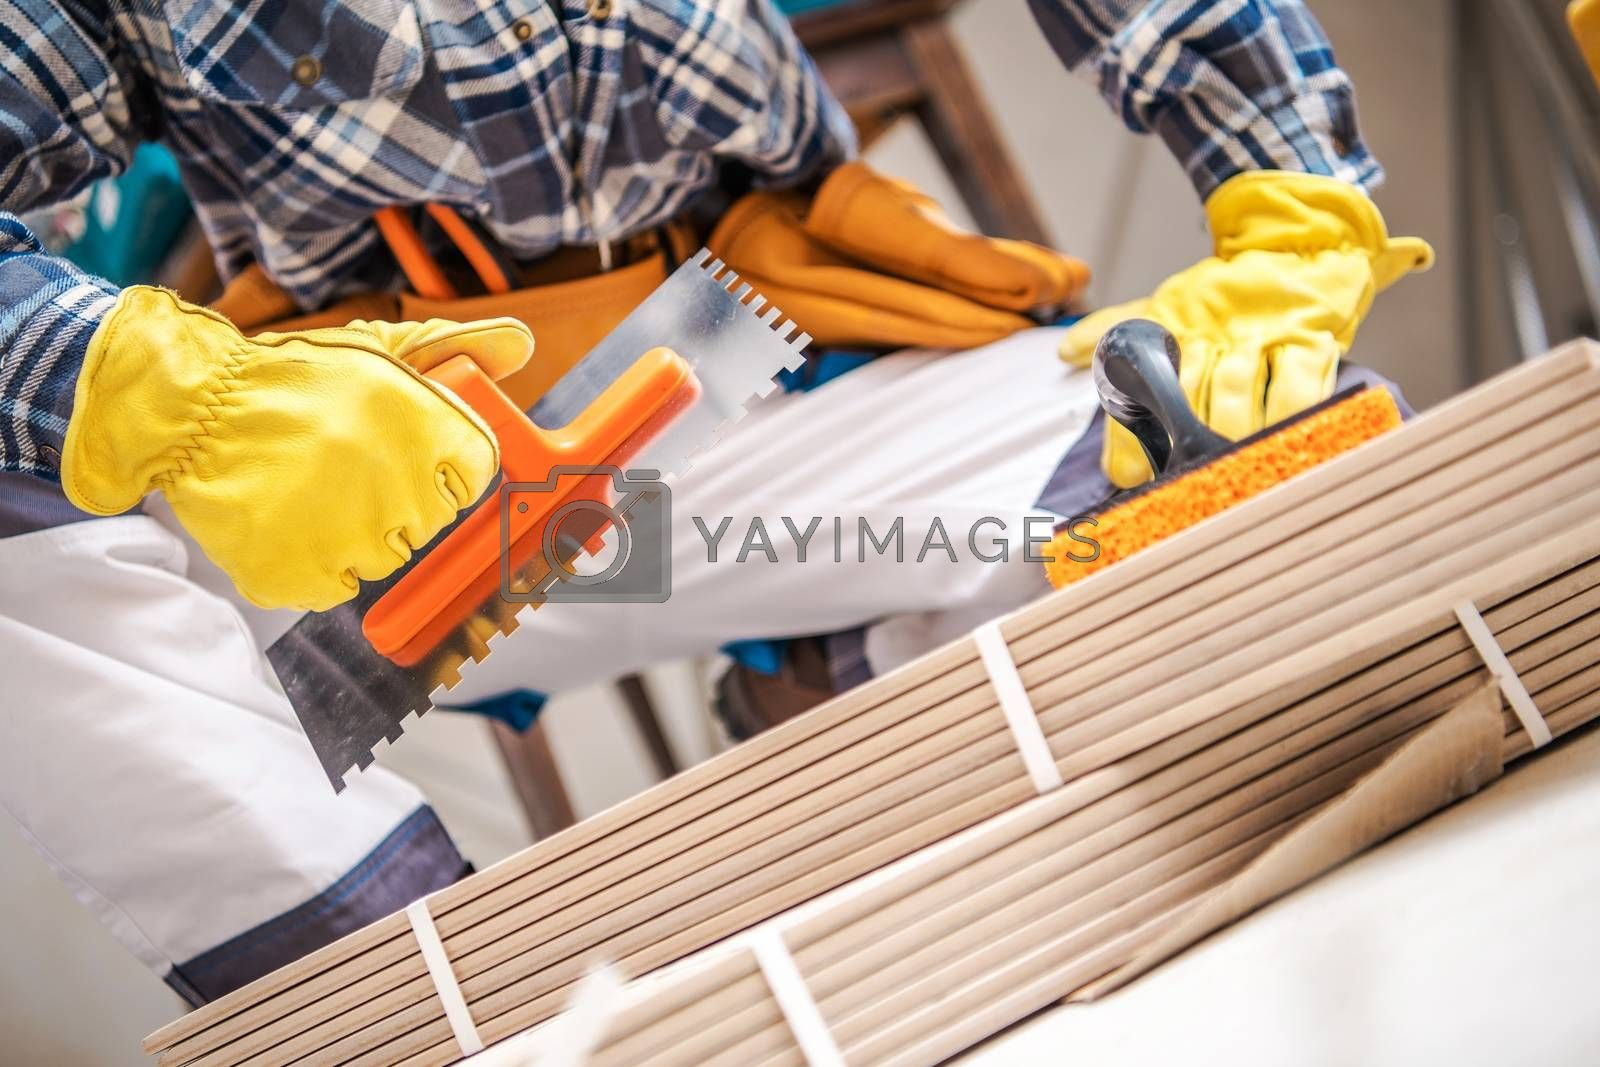 Ceramic Tiles Installer with Construction Tools. Closeup Photo.